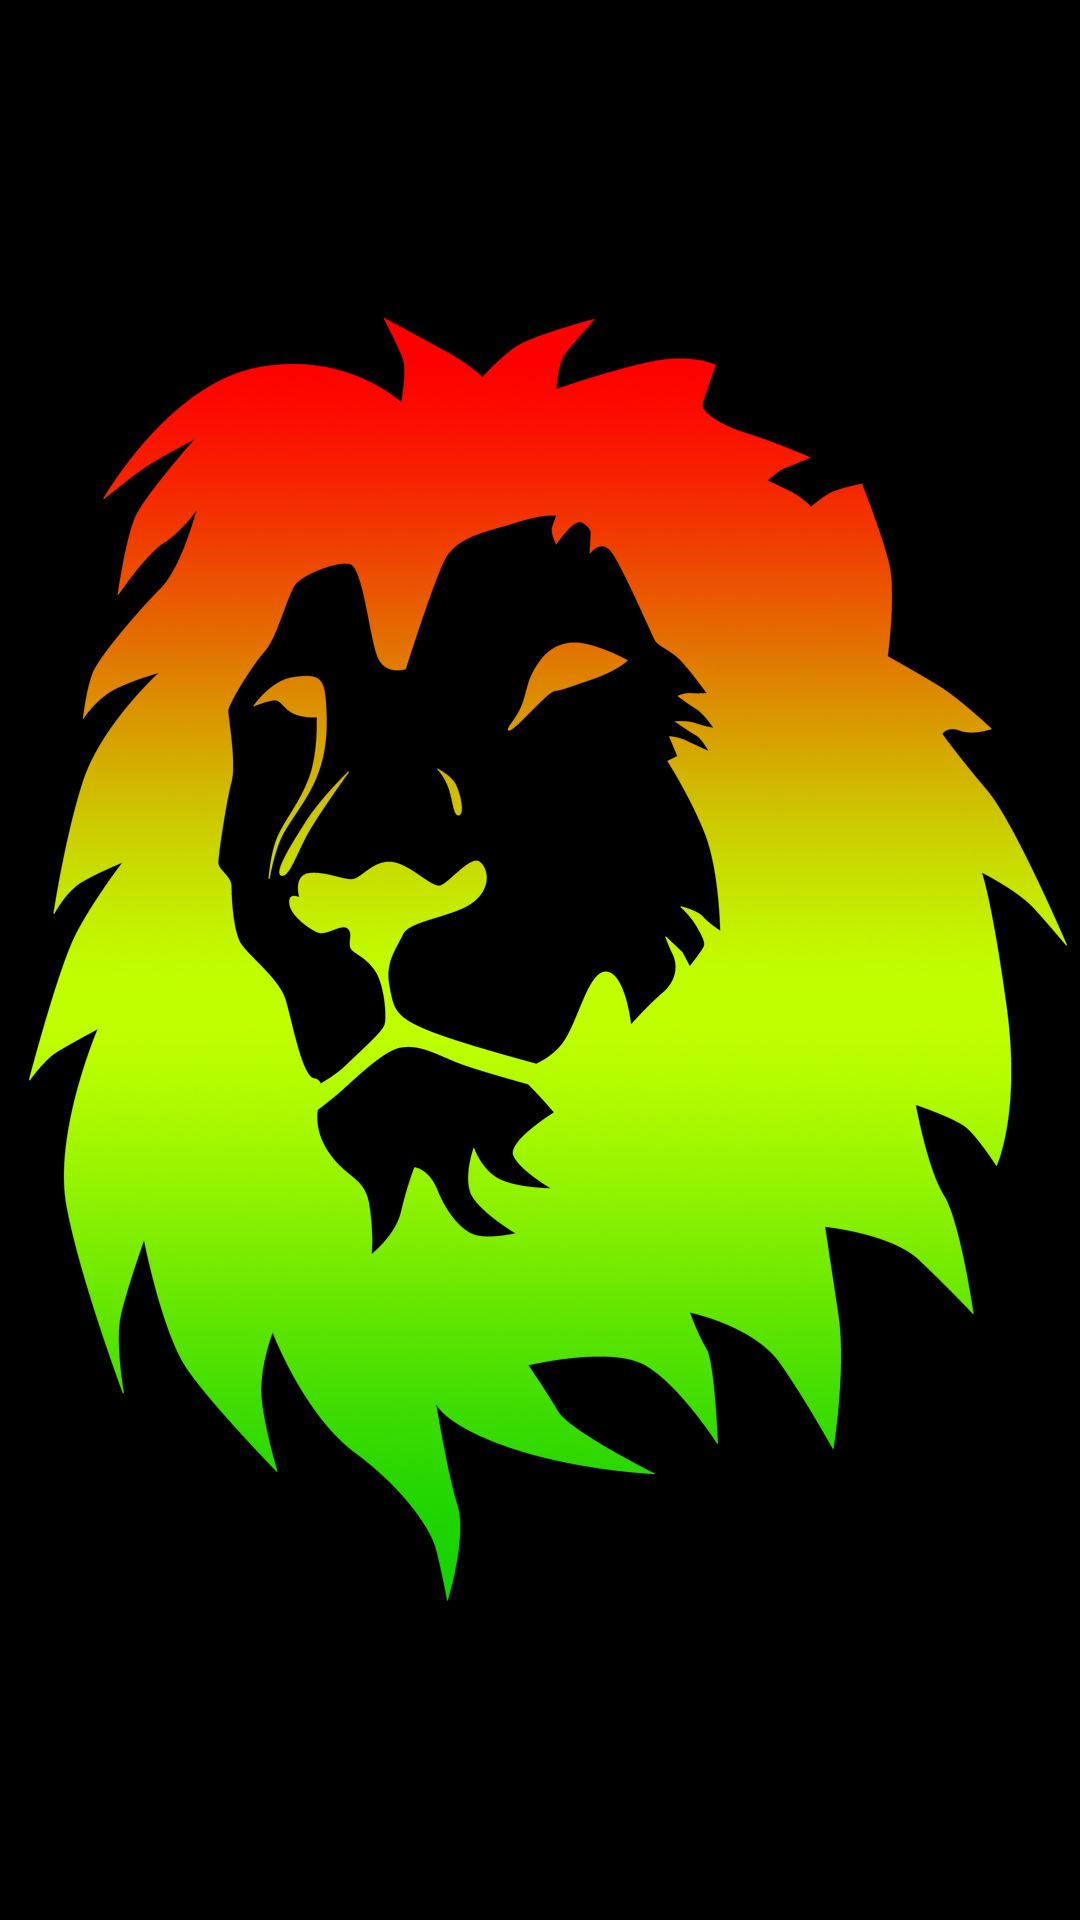 Hd rasta wallpapers wallpaper